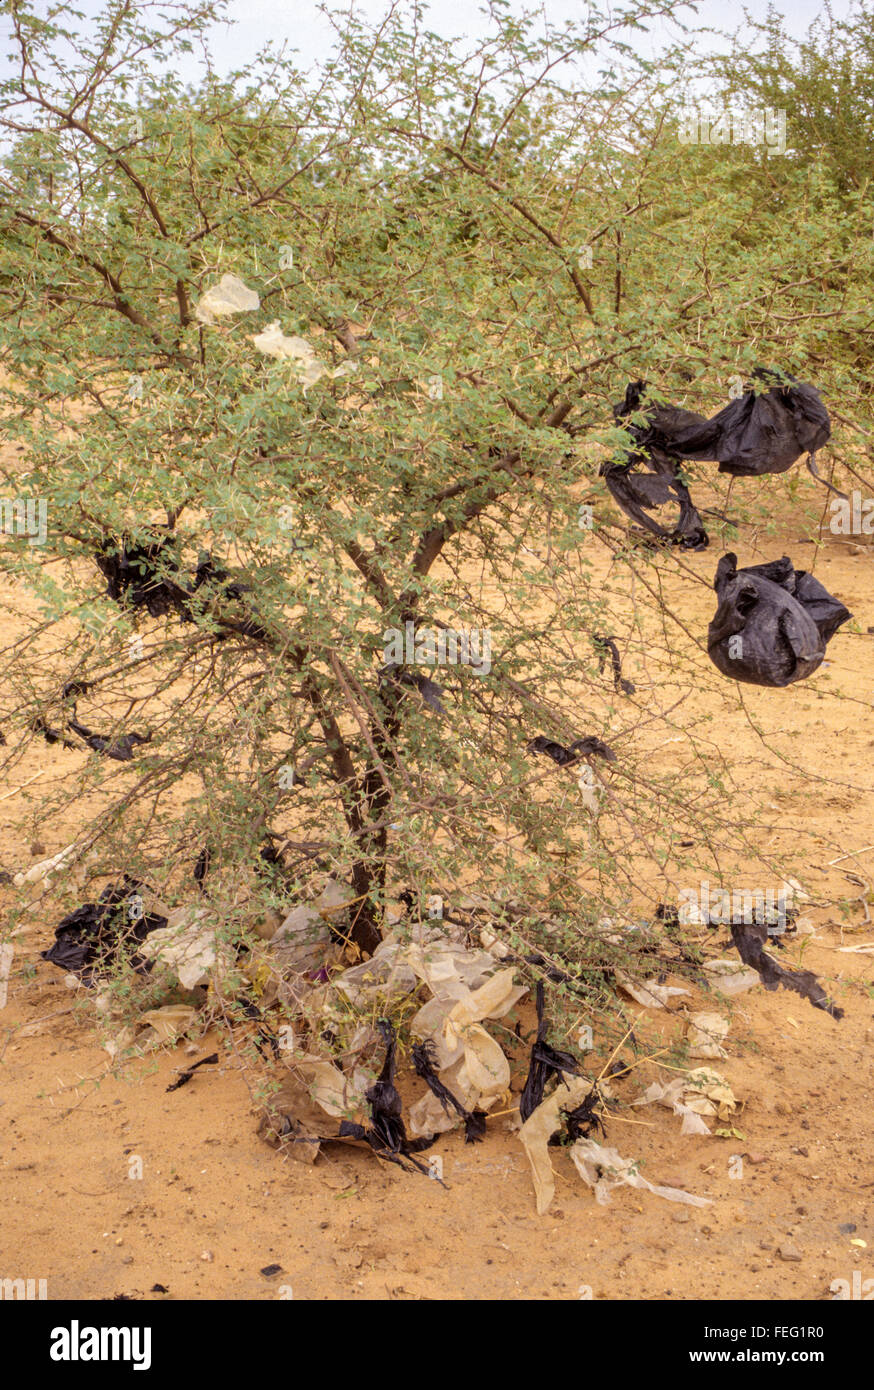 Niamey, Niger.  Non-biodegradable Plastic Bags Caught on Thorns of a Young Acacia Tree. - Stock Image